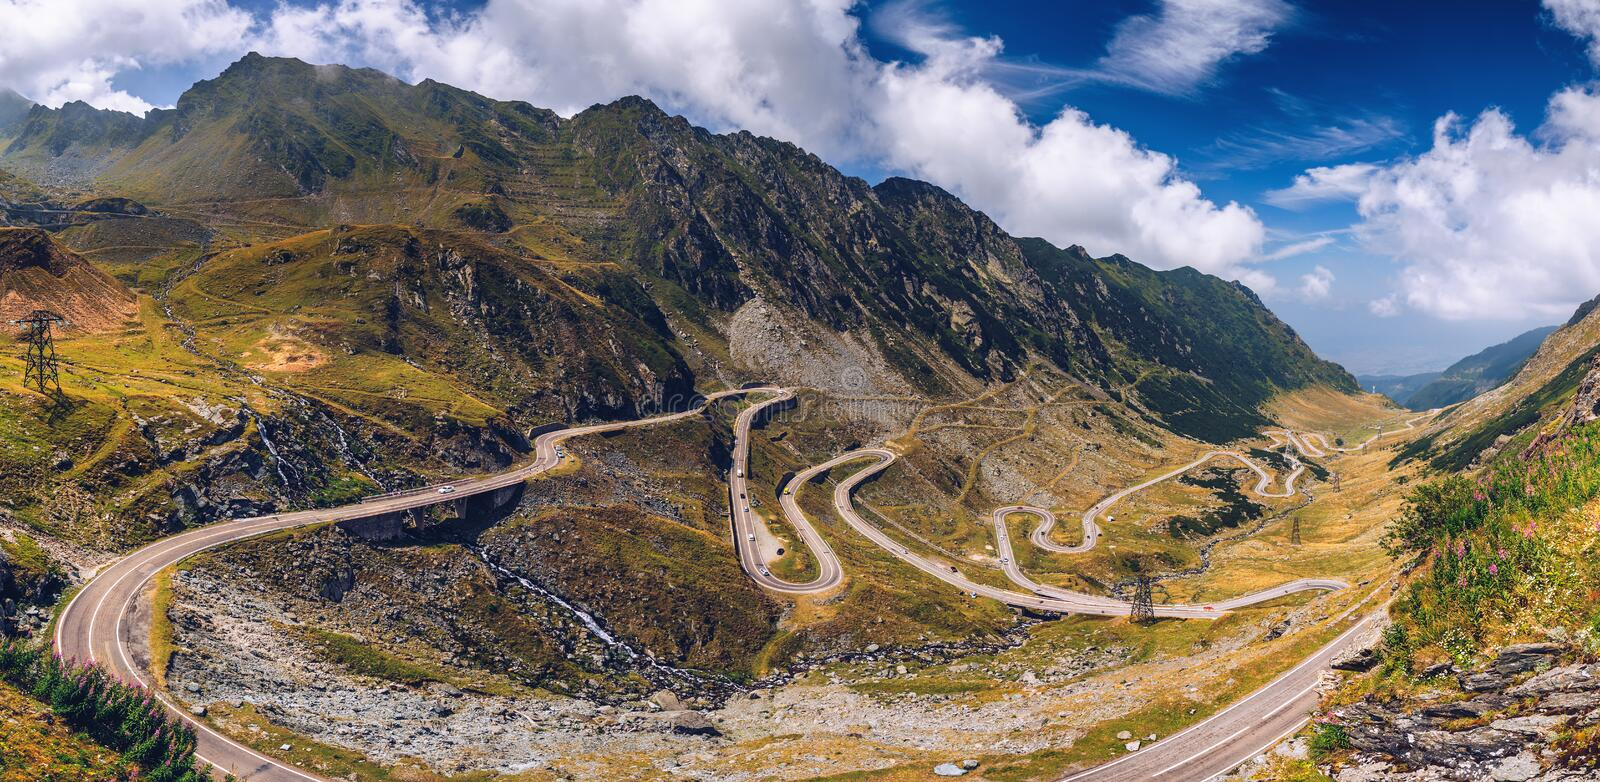 Transfagarasan highway, probably the most beautiful road in the world, Europe, Romania Transfagarashan.  stock photo